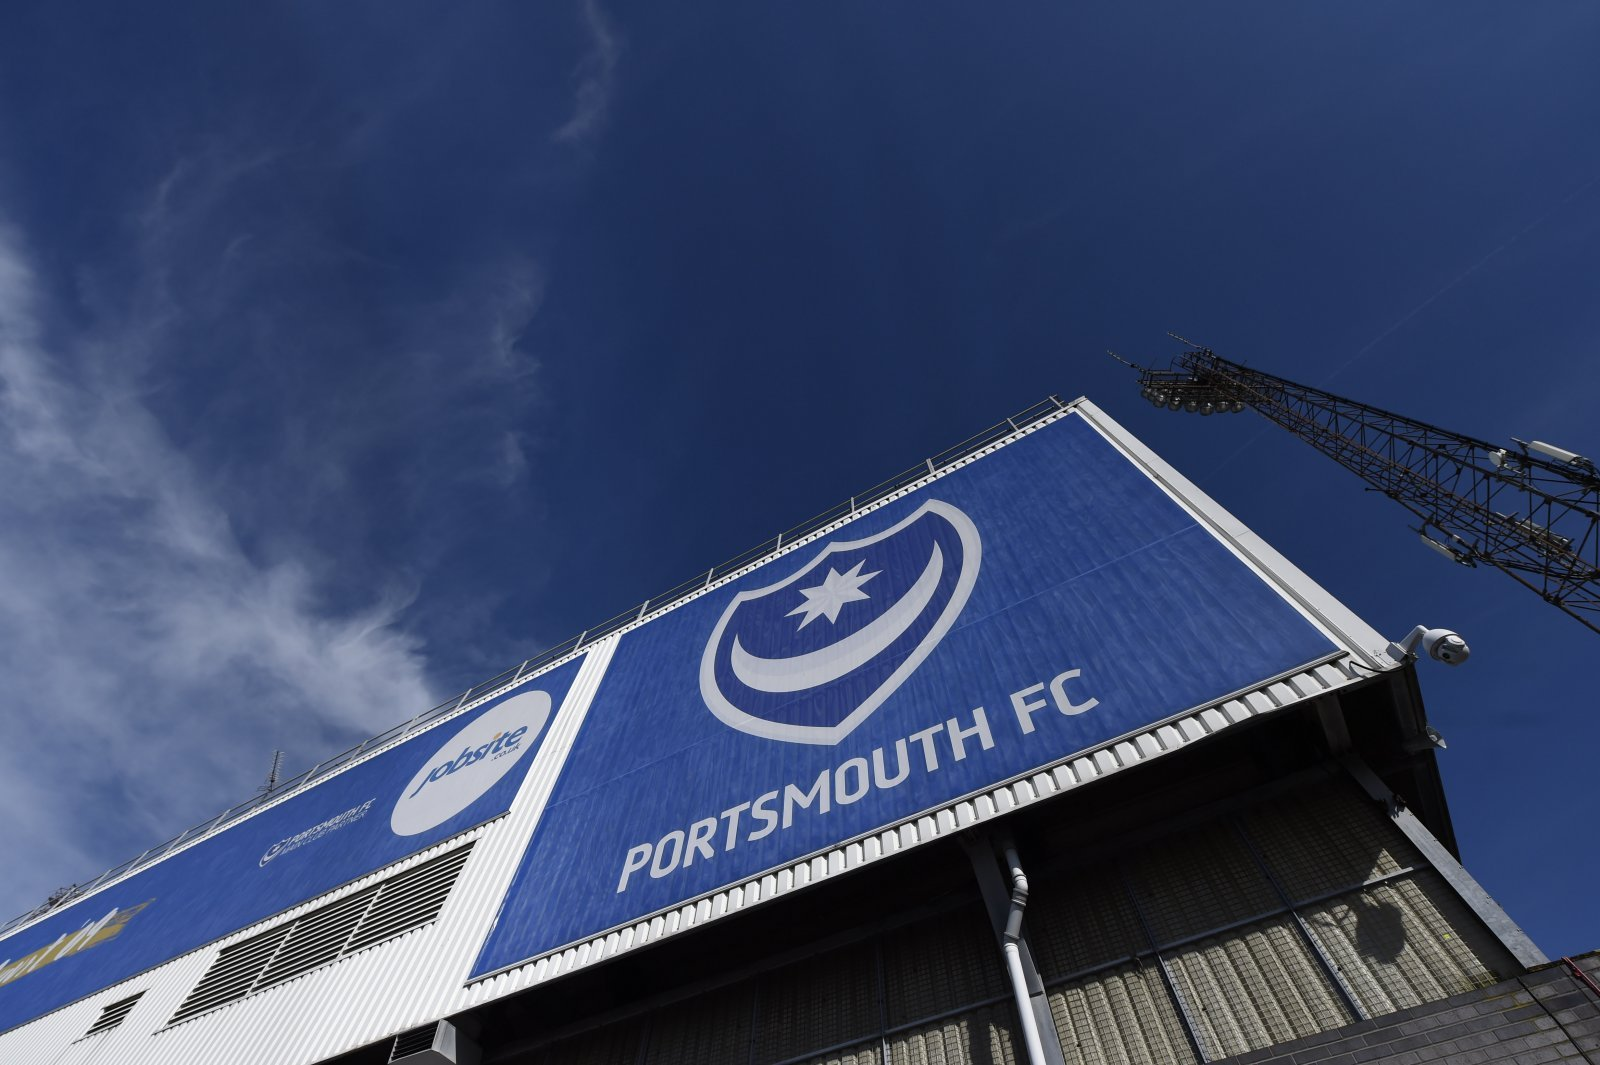 Portsmouth team news: Ronan Curtis unavailable with international duty